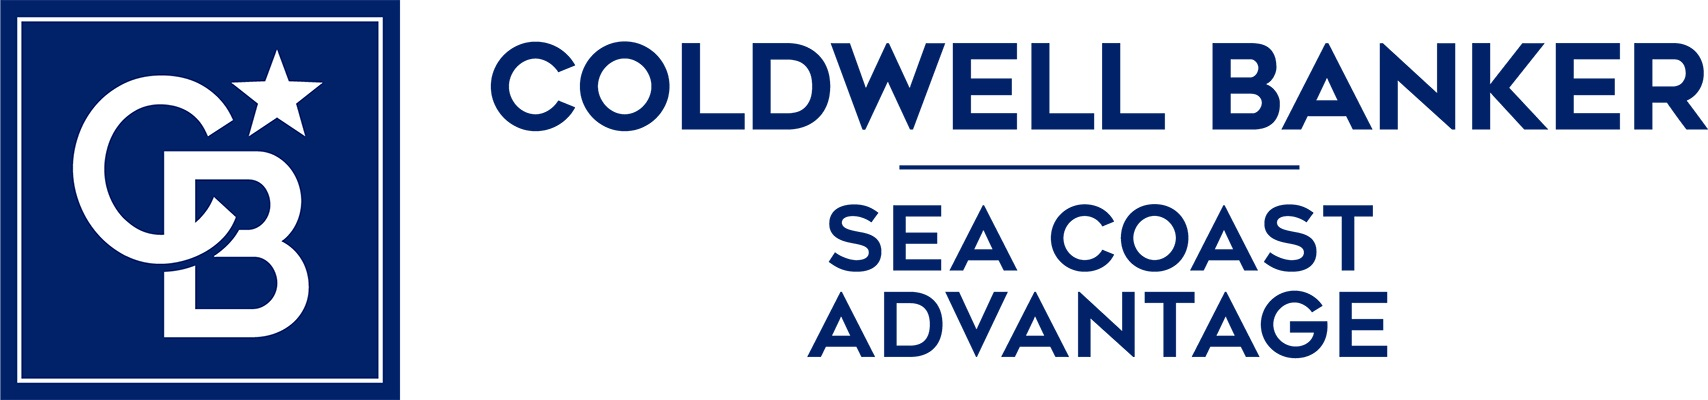 Kelly Brantley - Coldwell Banker Sea Coast Advantage Realty